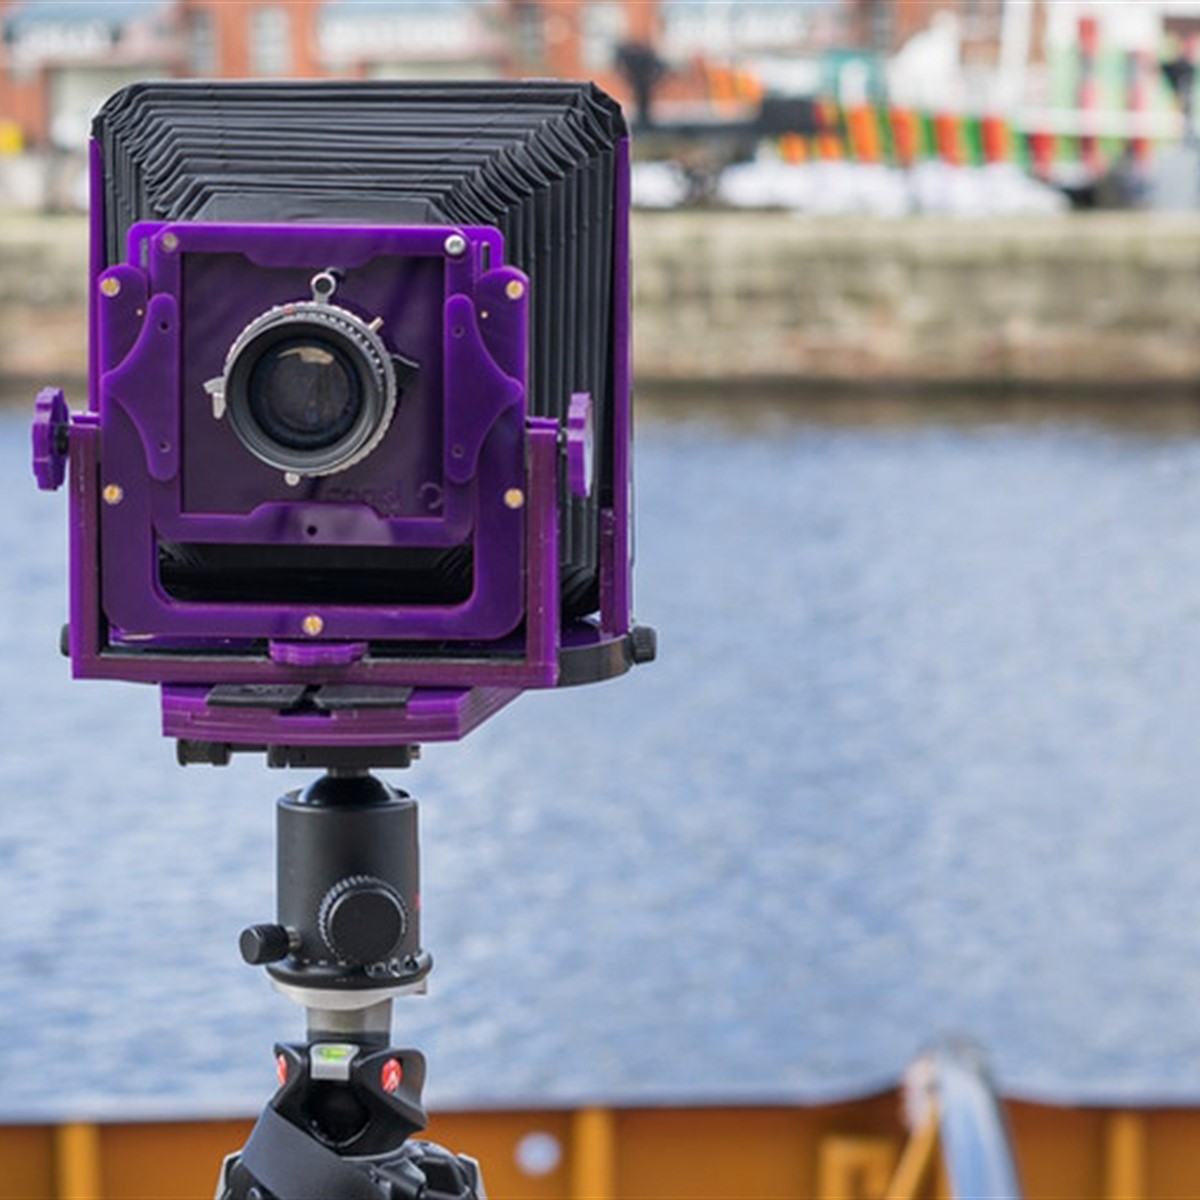 The Chroma is a lightweight, affordable, easy-to-use 5x4 field